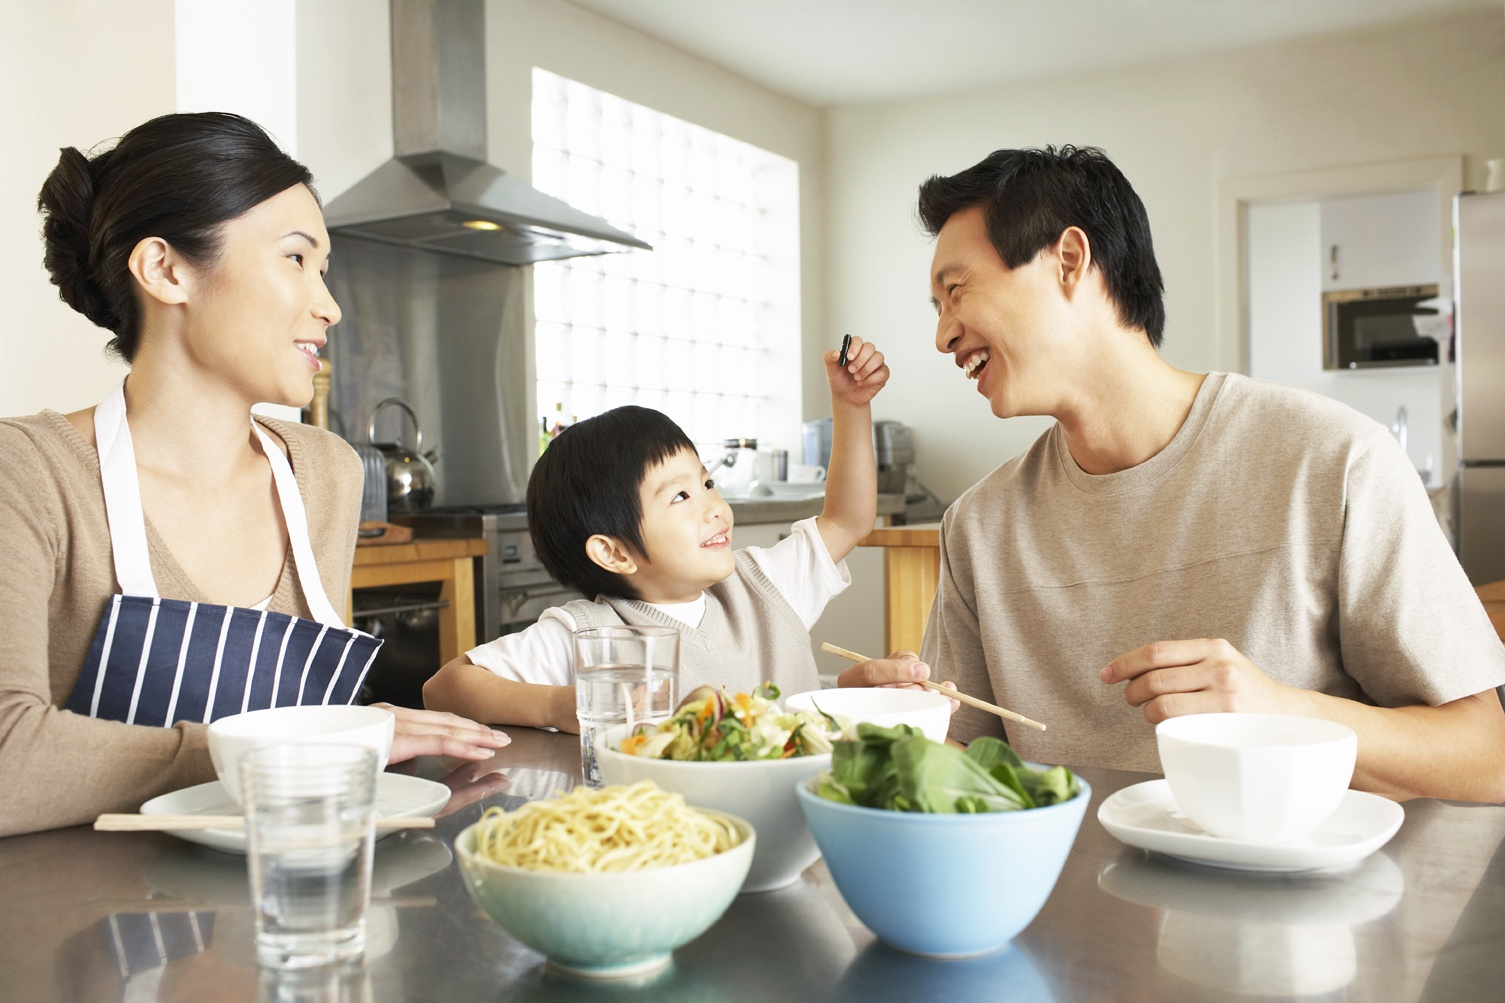 Establish healthy eating habits as a family.